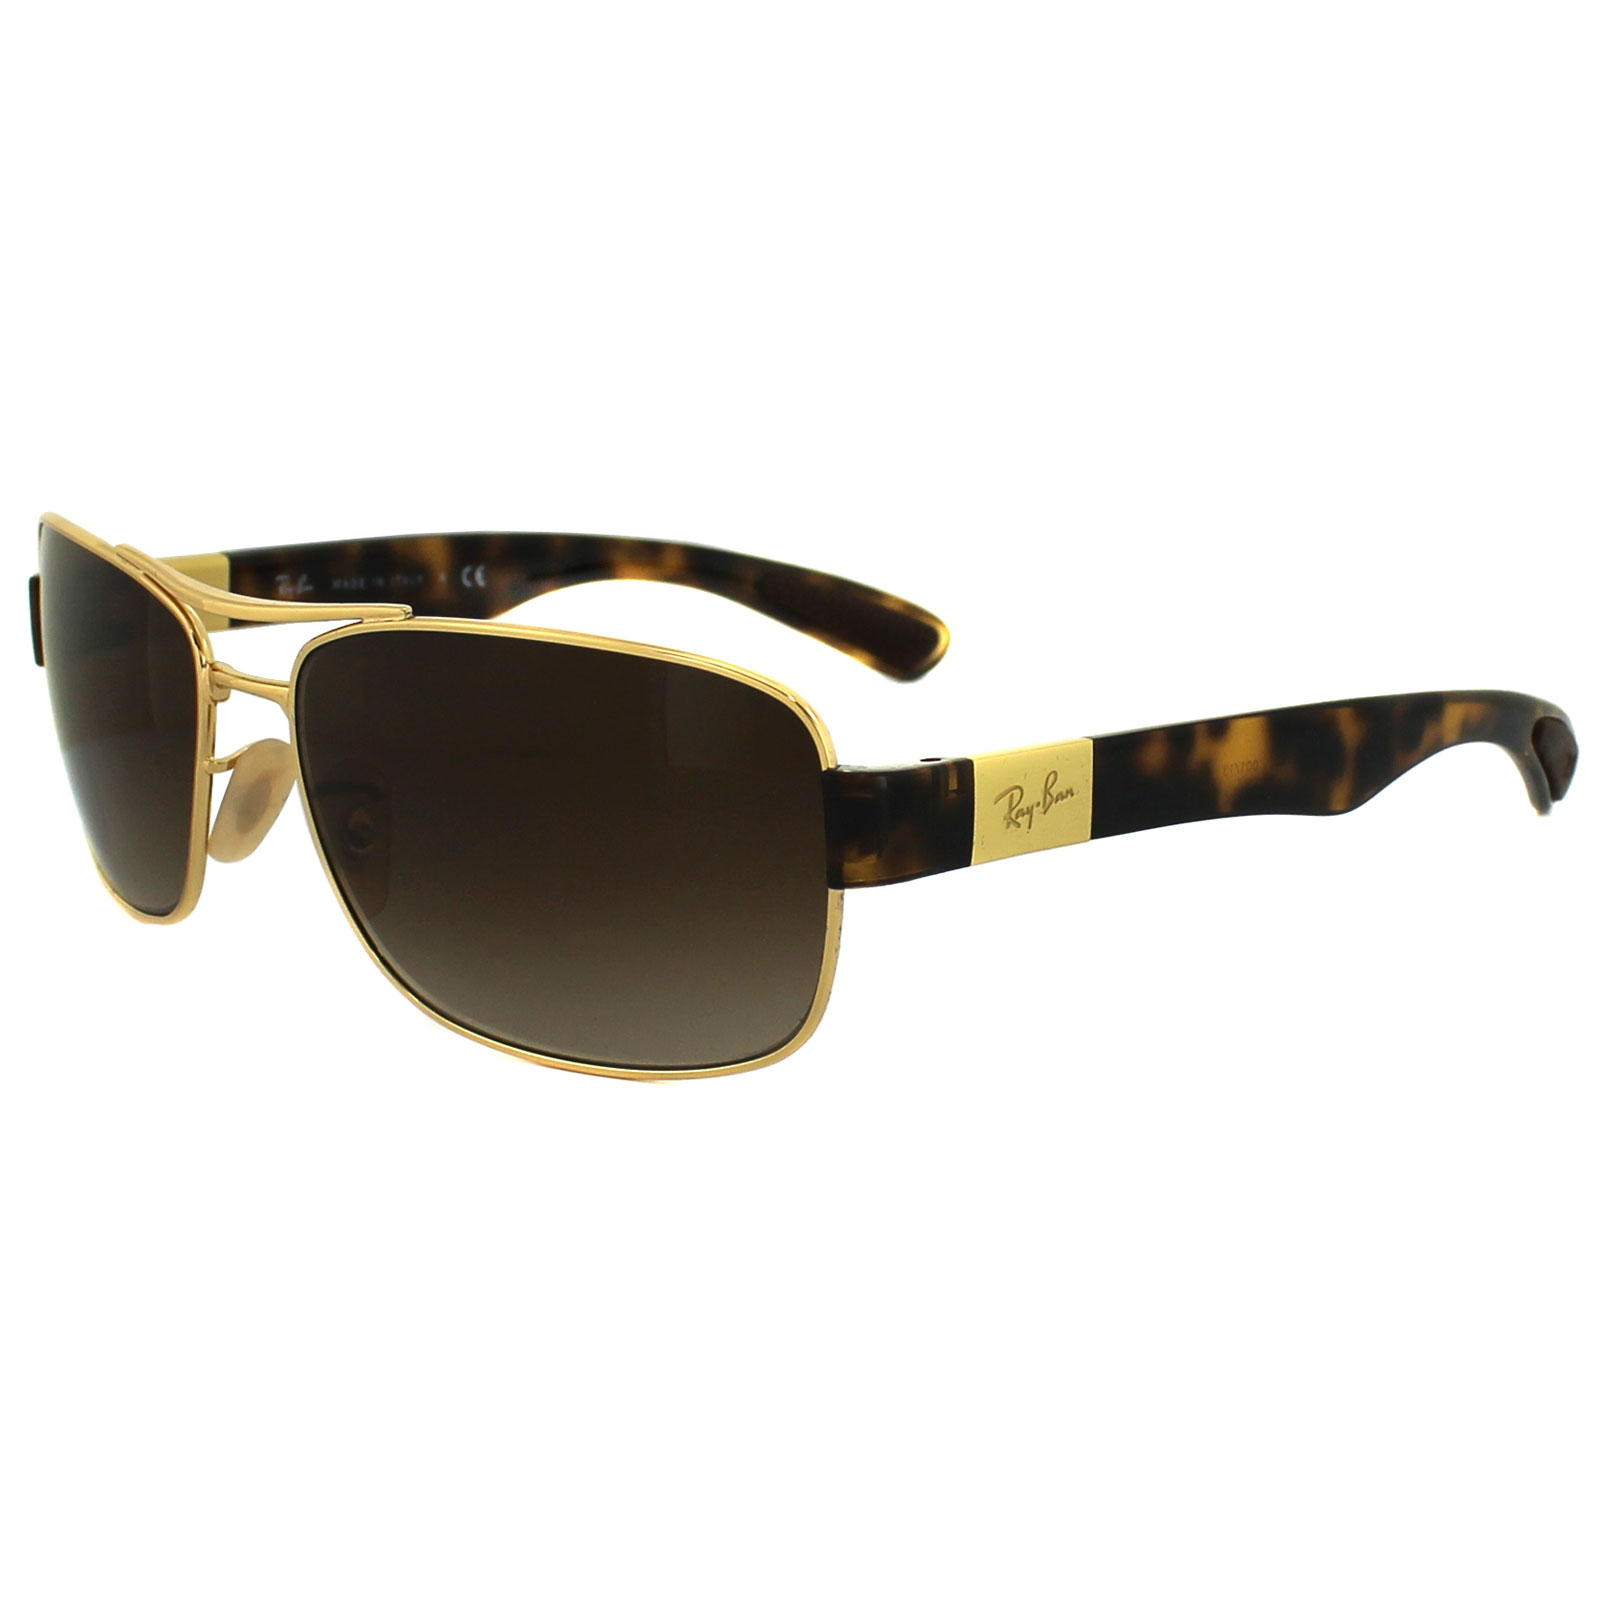 8e705321055 ... get sentinel ray ban sunglasses 3522 001 13 gold brown gradient 09a02  b3b04